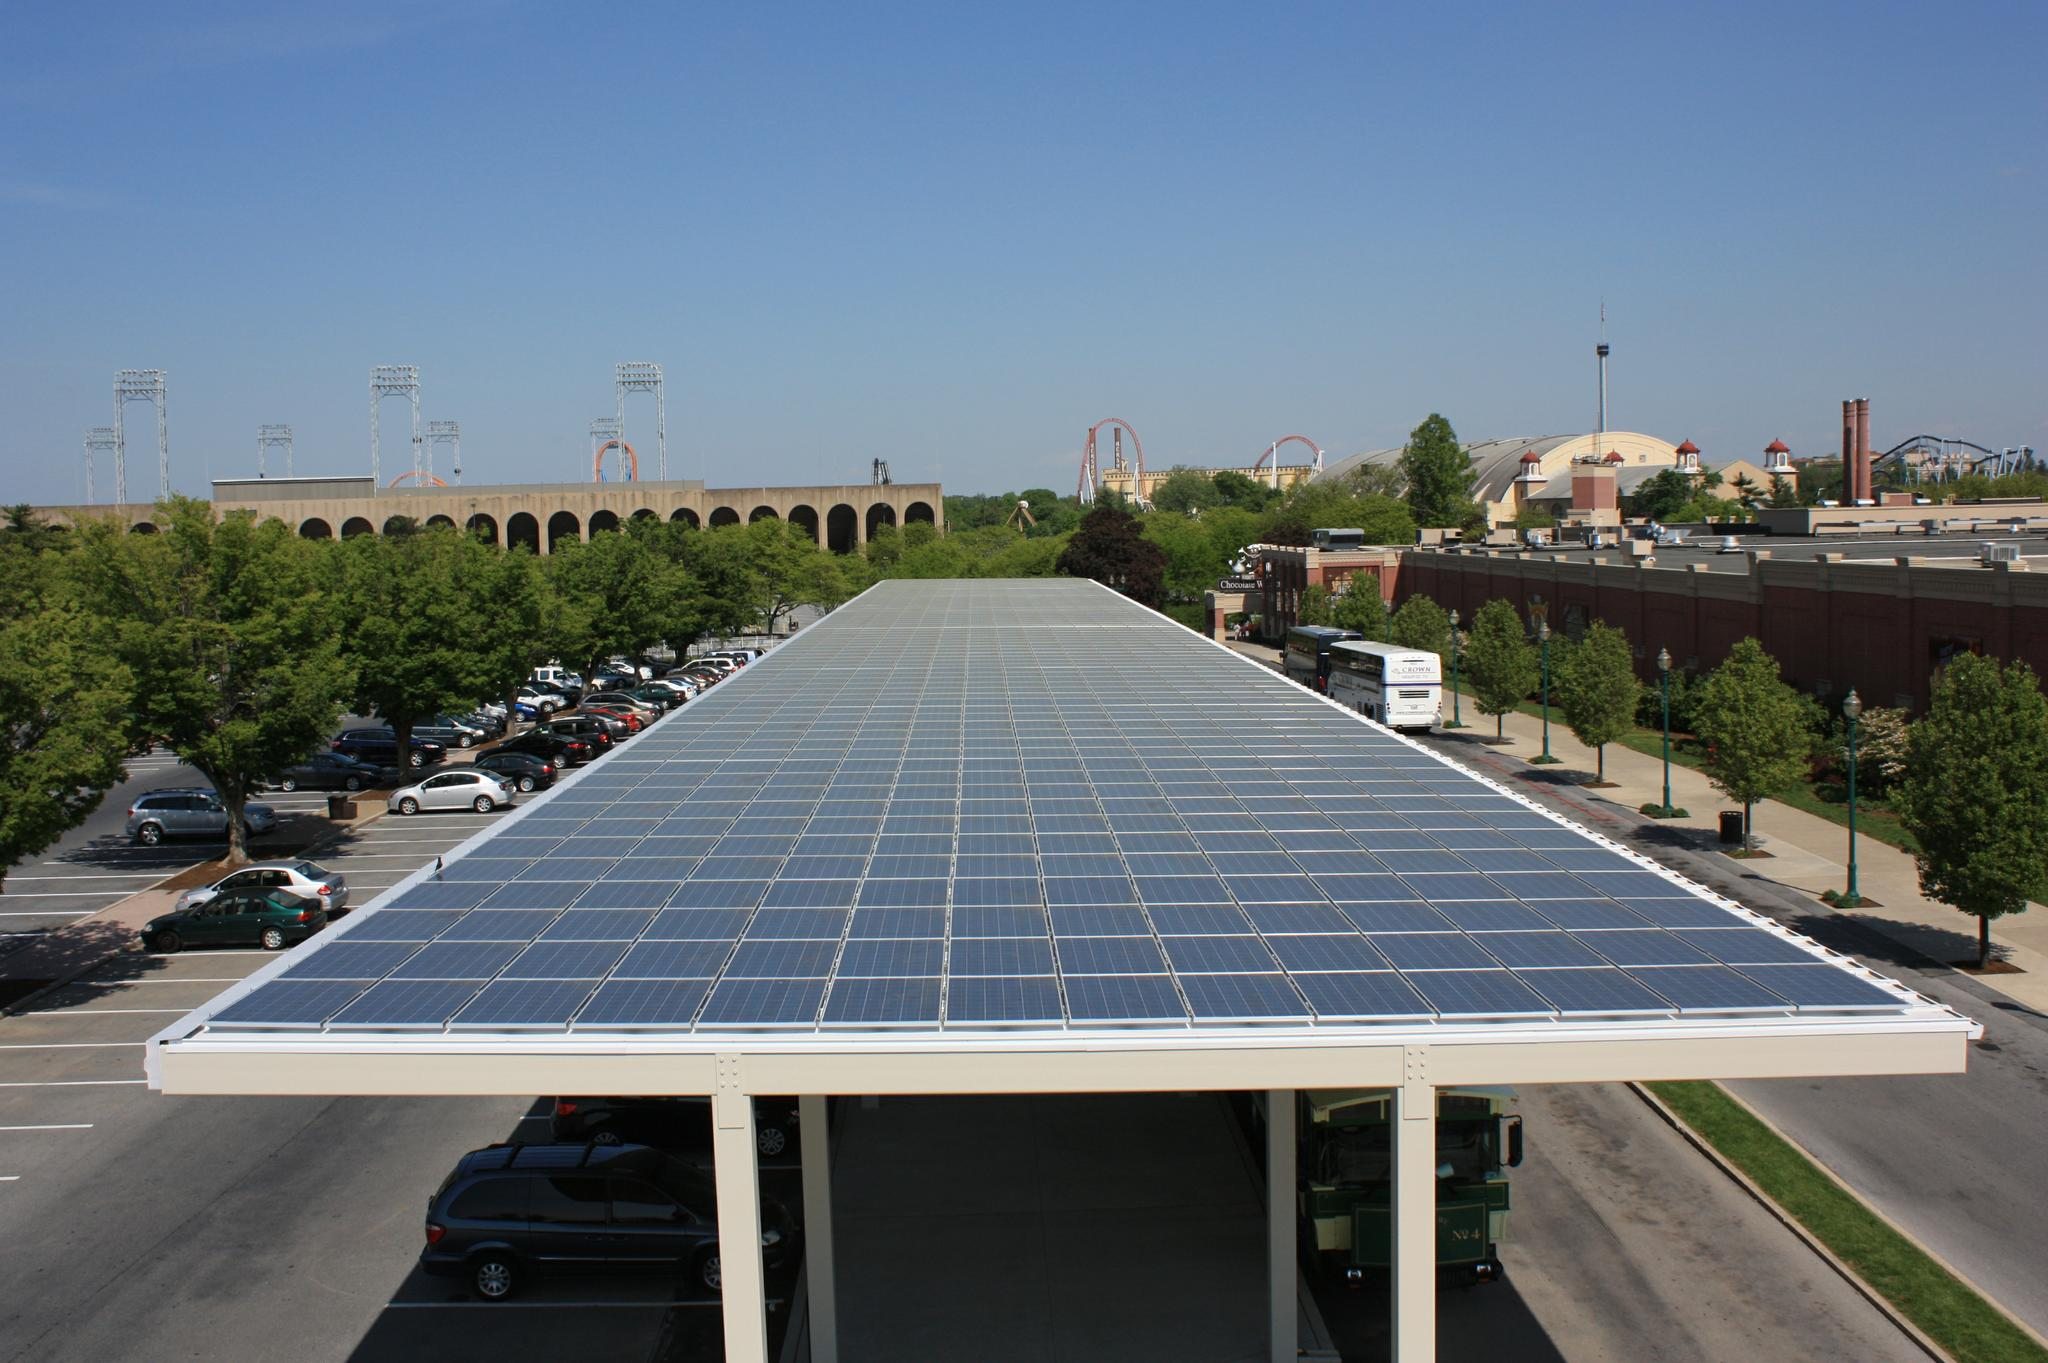 Solar Canopies Bring Solar Panels To Your Parking Lot